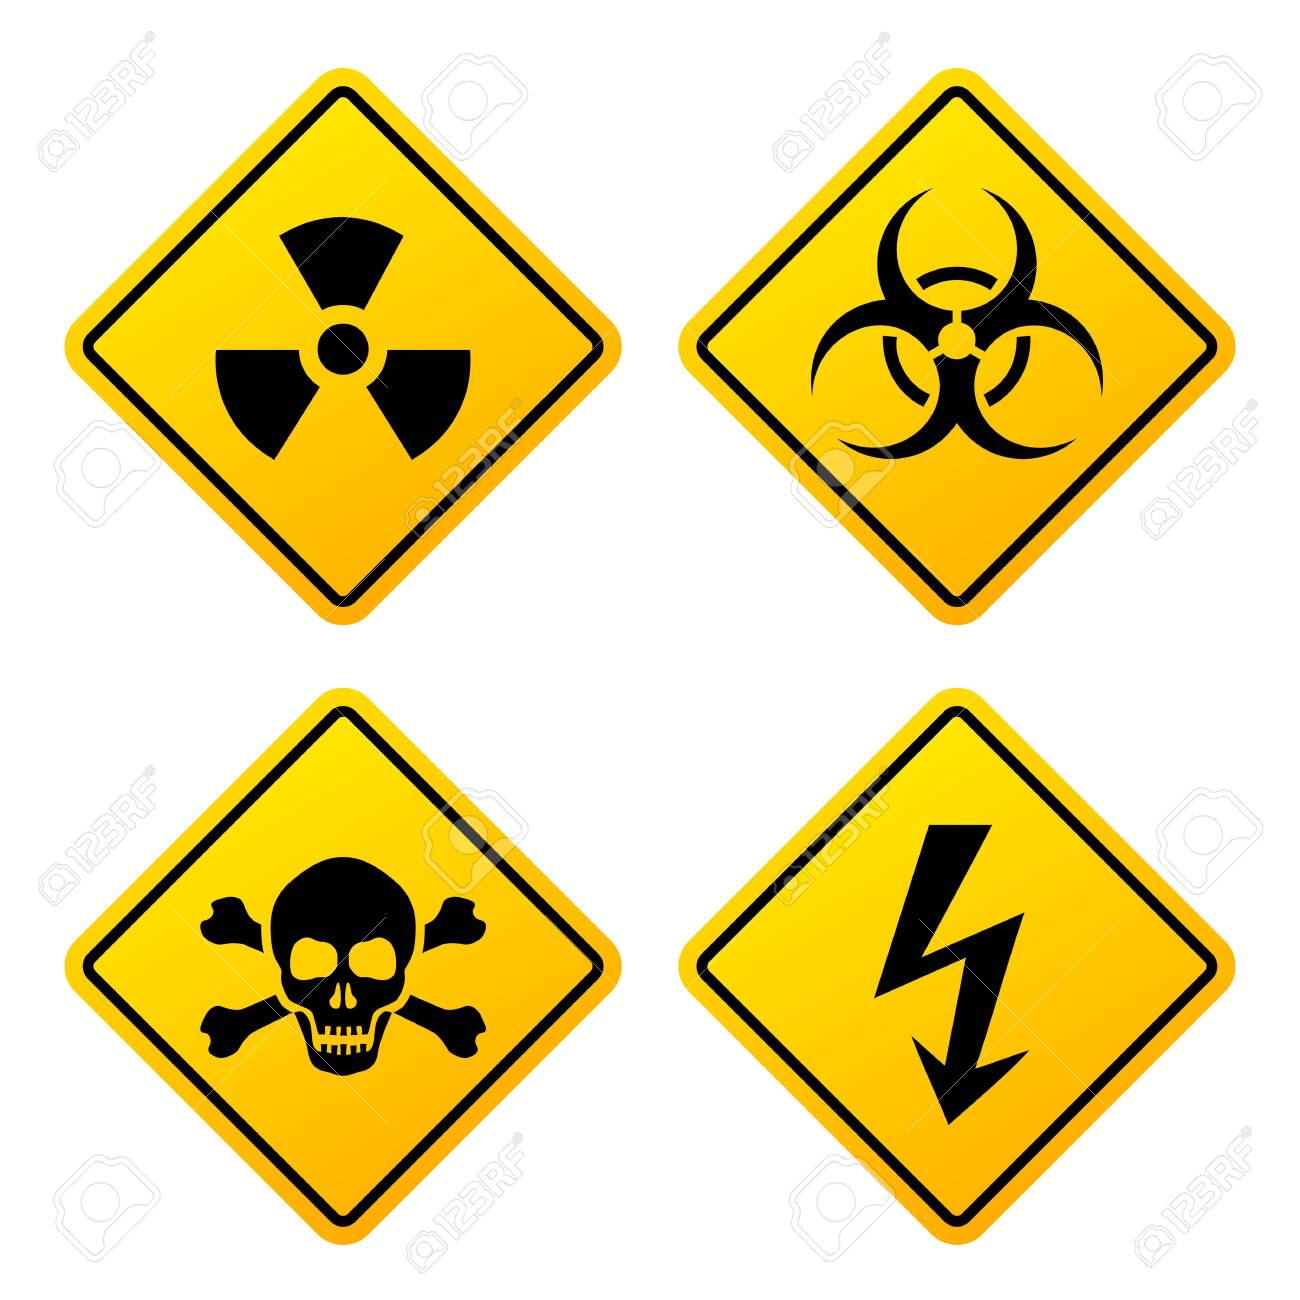 Yellow danger signs set isolated on white background - 133370641